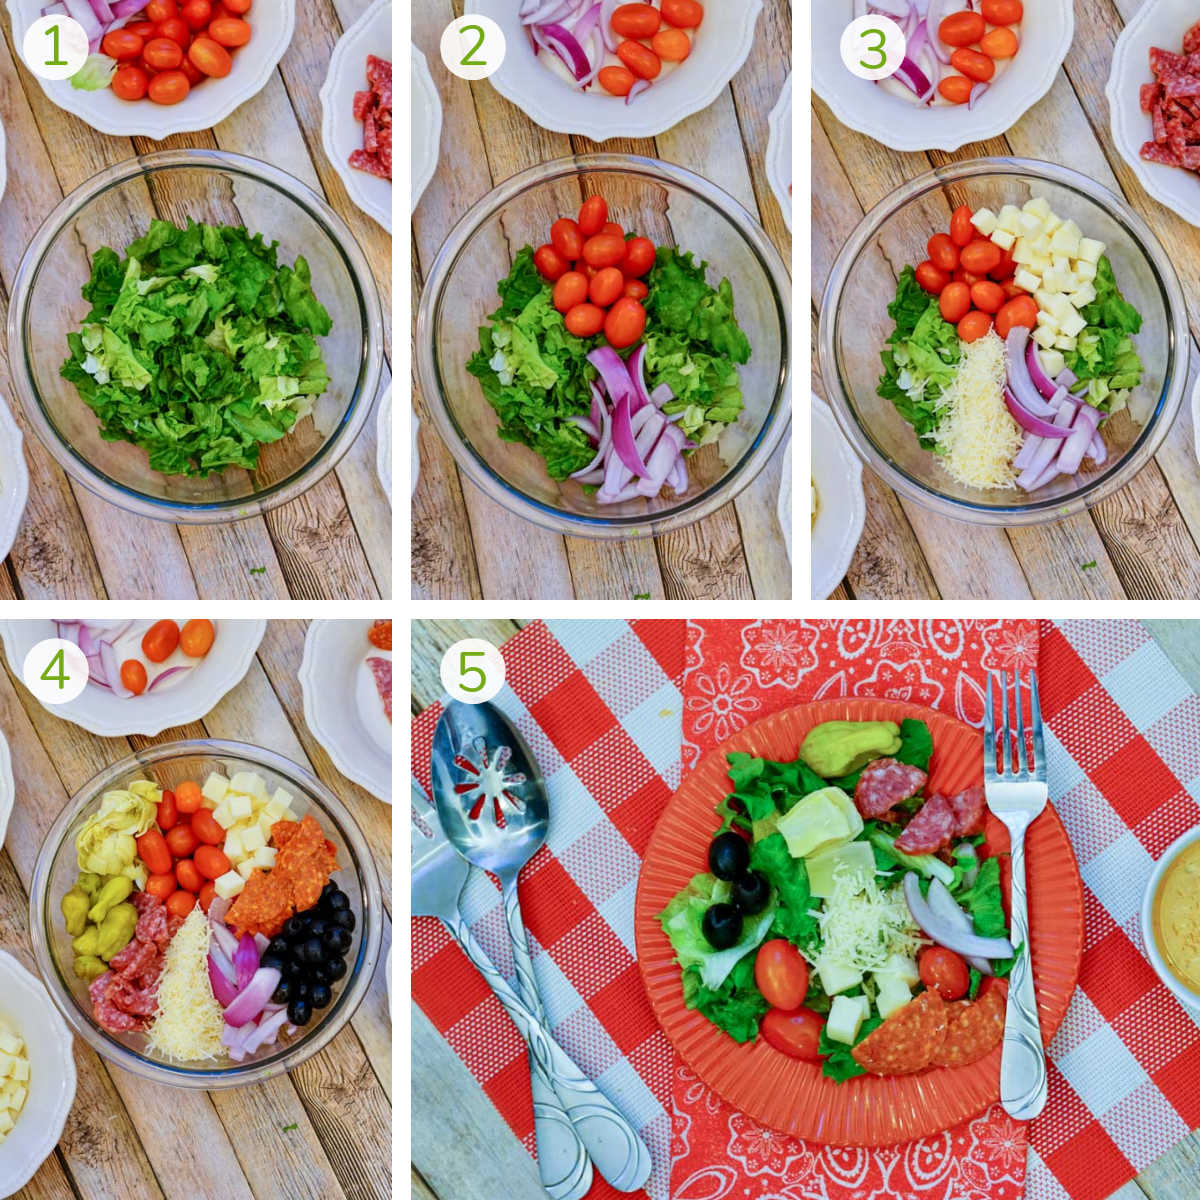 process photos showing how to add the various ingredients to form and serve the salad.